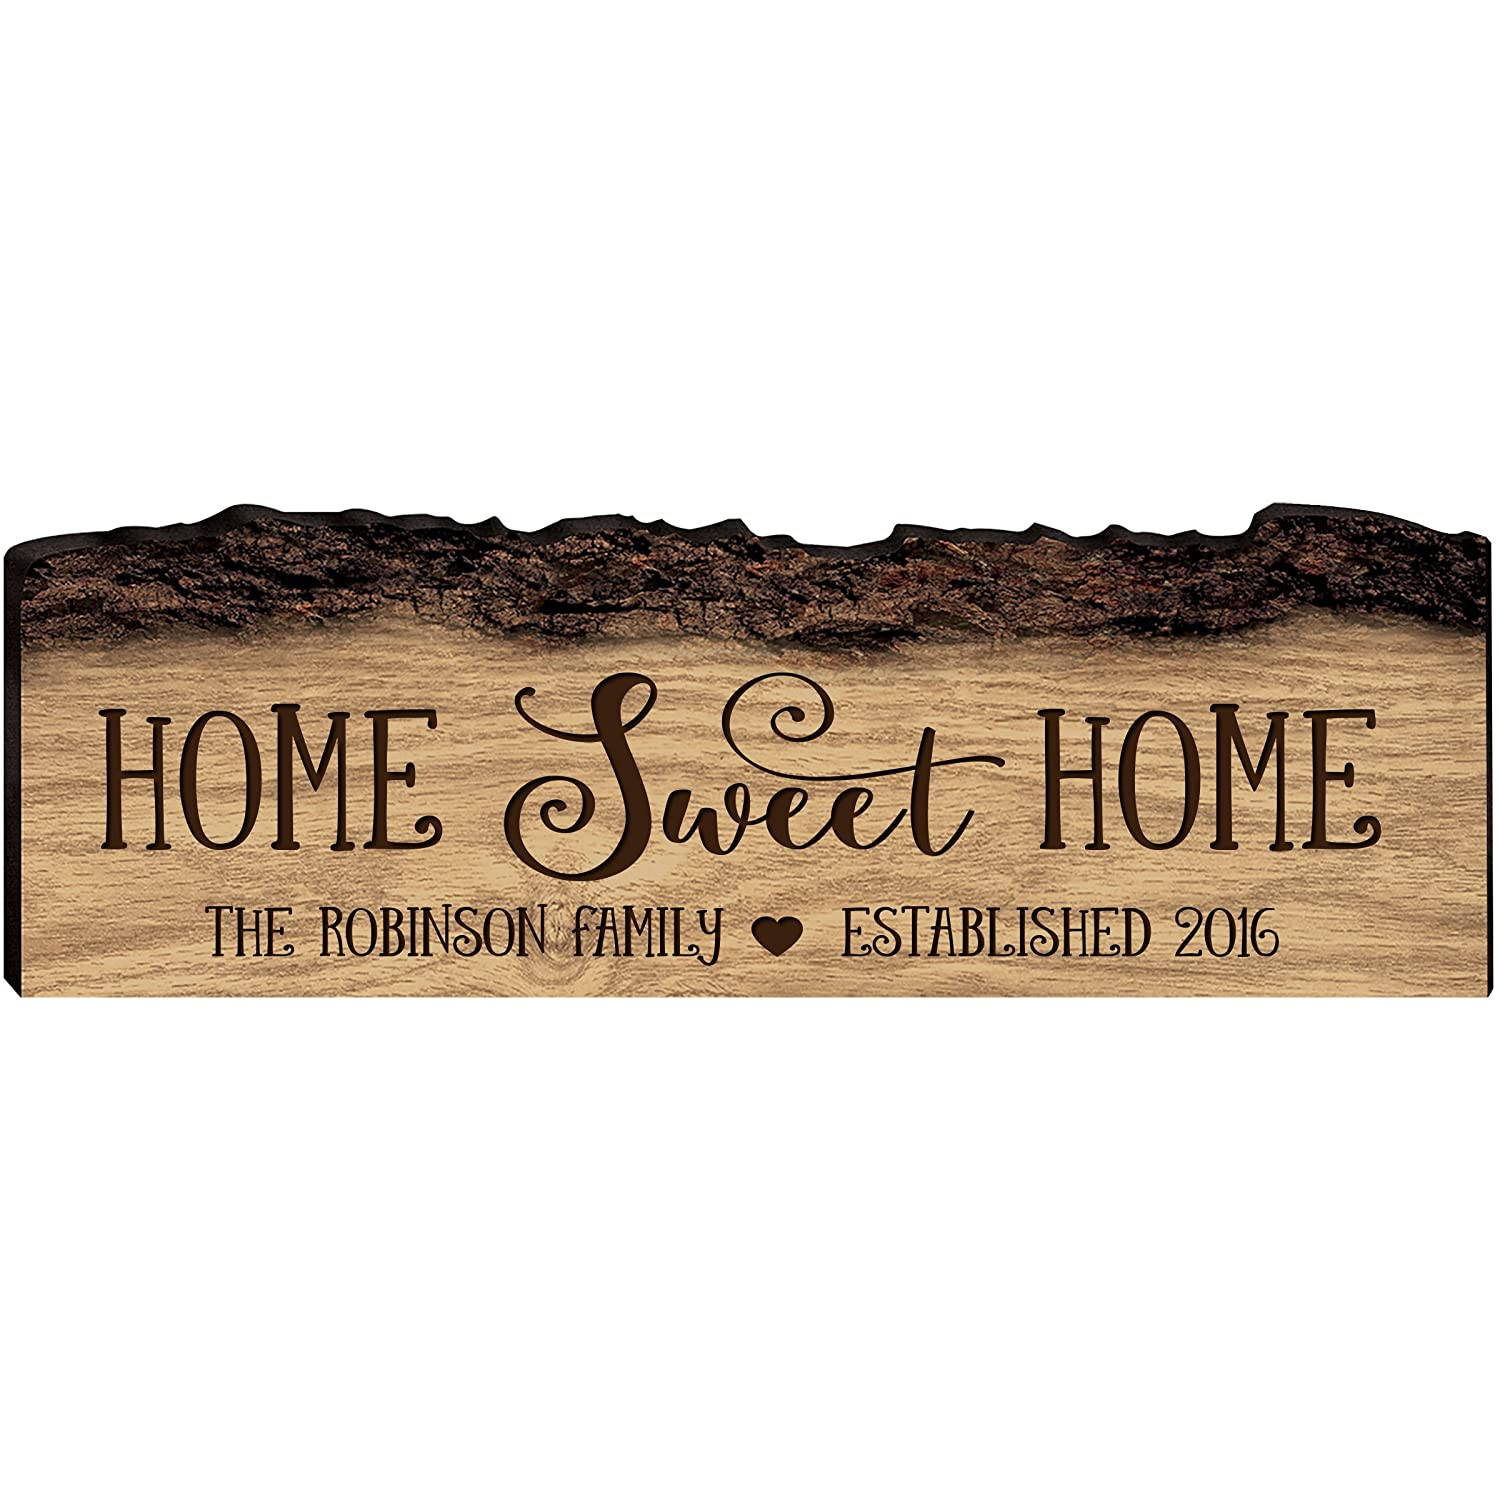 LifeSong Milestones Personalized Custom Family Name Sign with Established Date Engraved with Family Name Home Sweet Home Wall Plaque (Home Sweet Home)